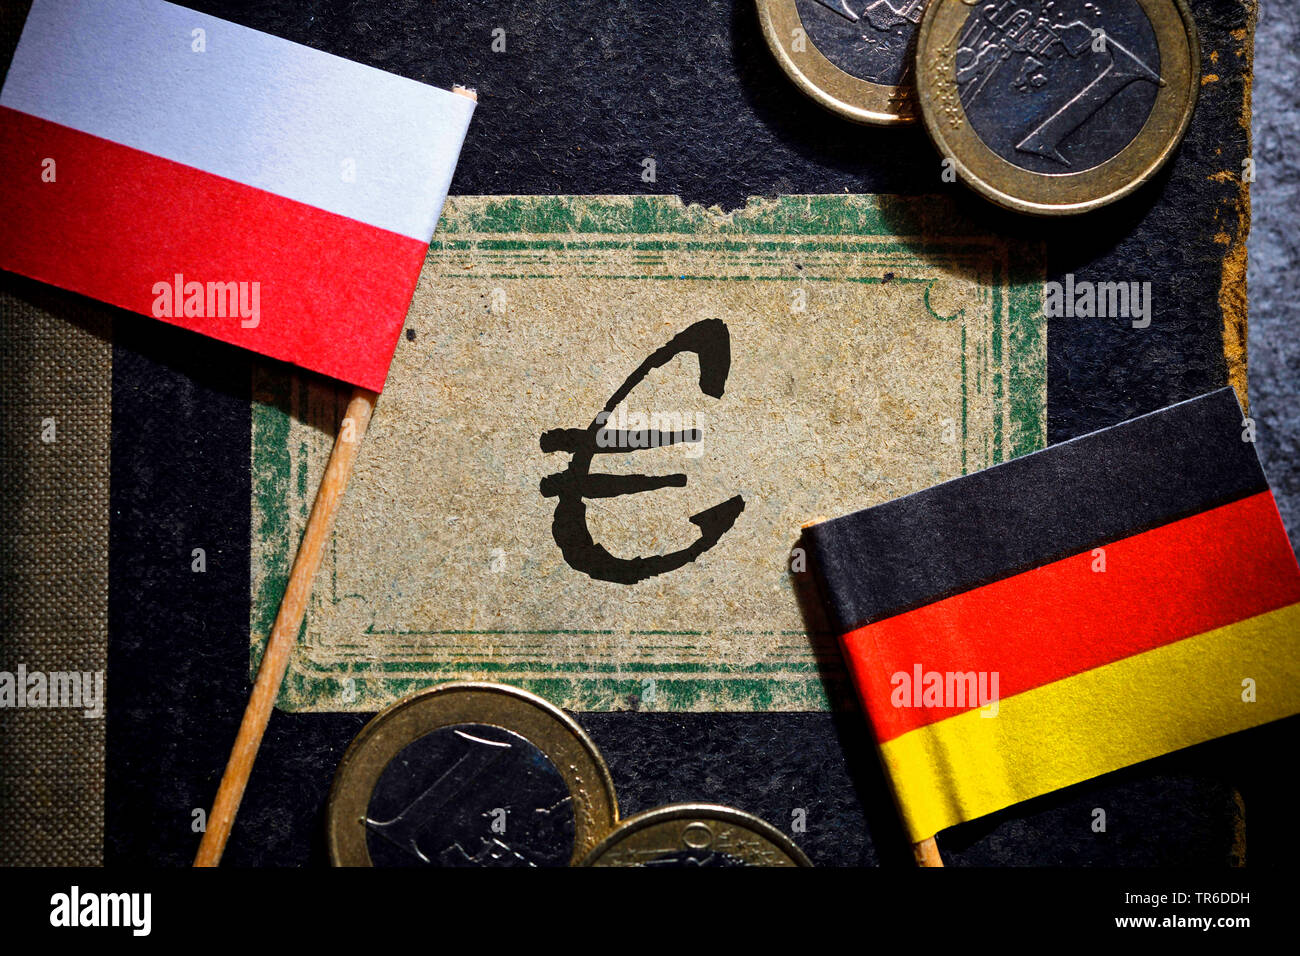 flags of Germany and Poland, book with the word reparation claim, Germany - Stock Image